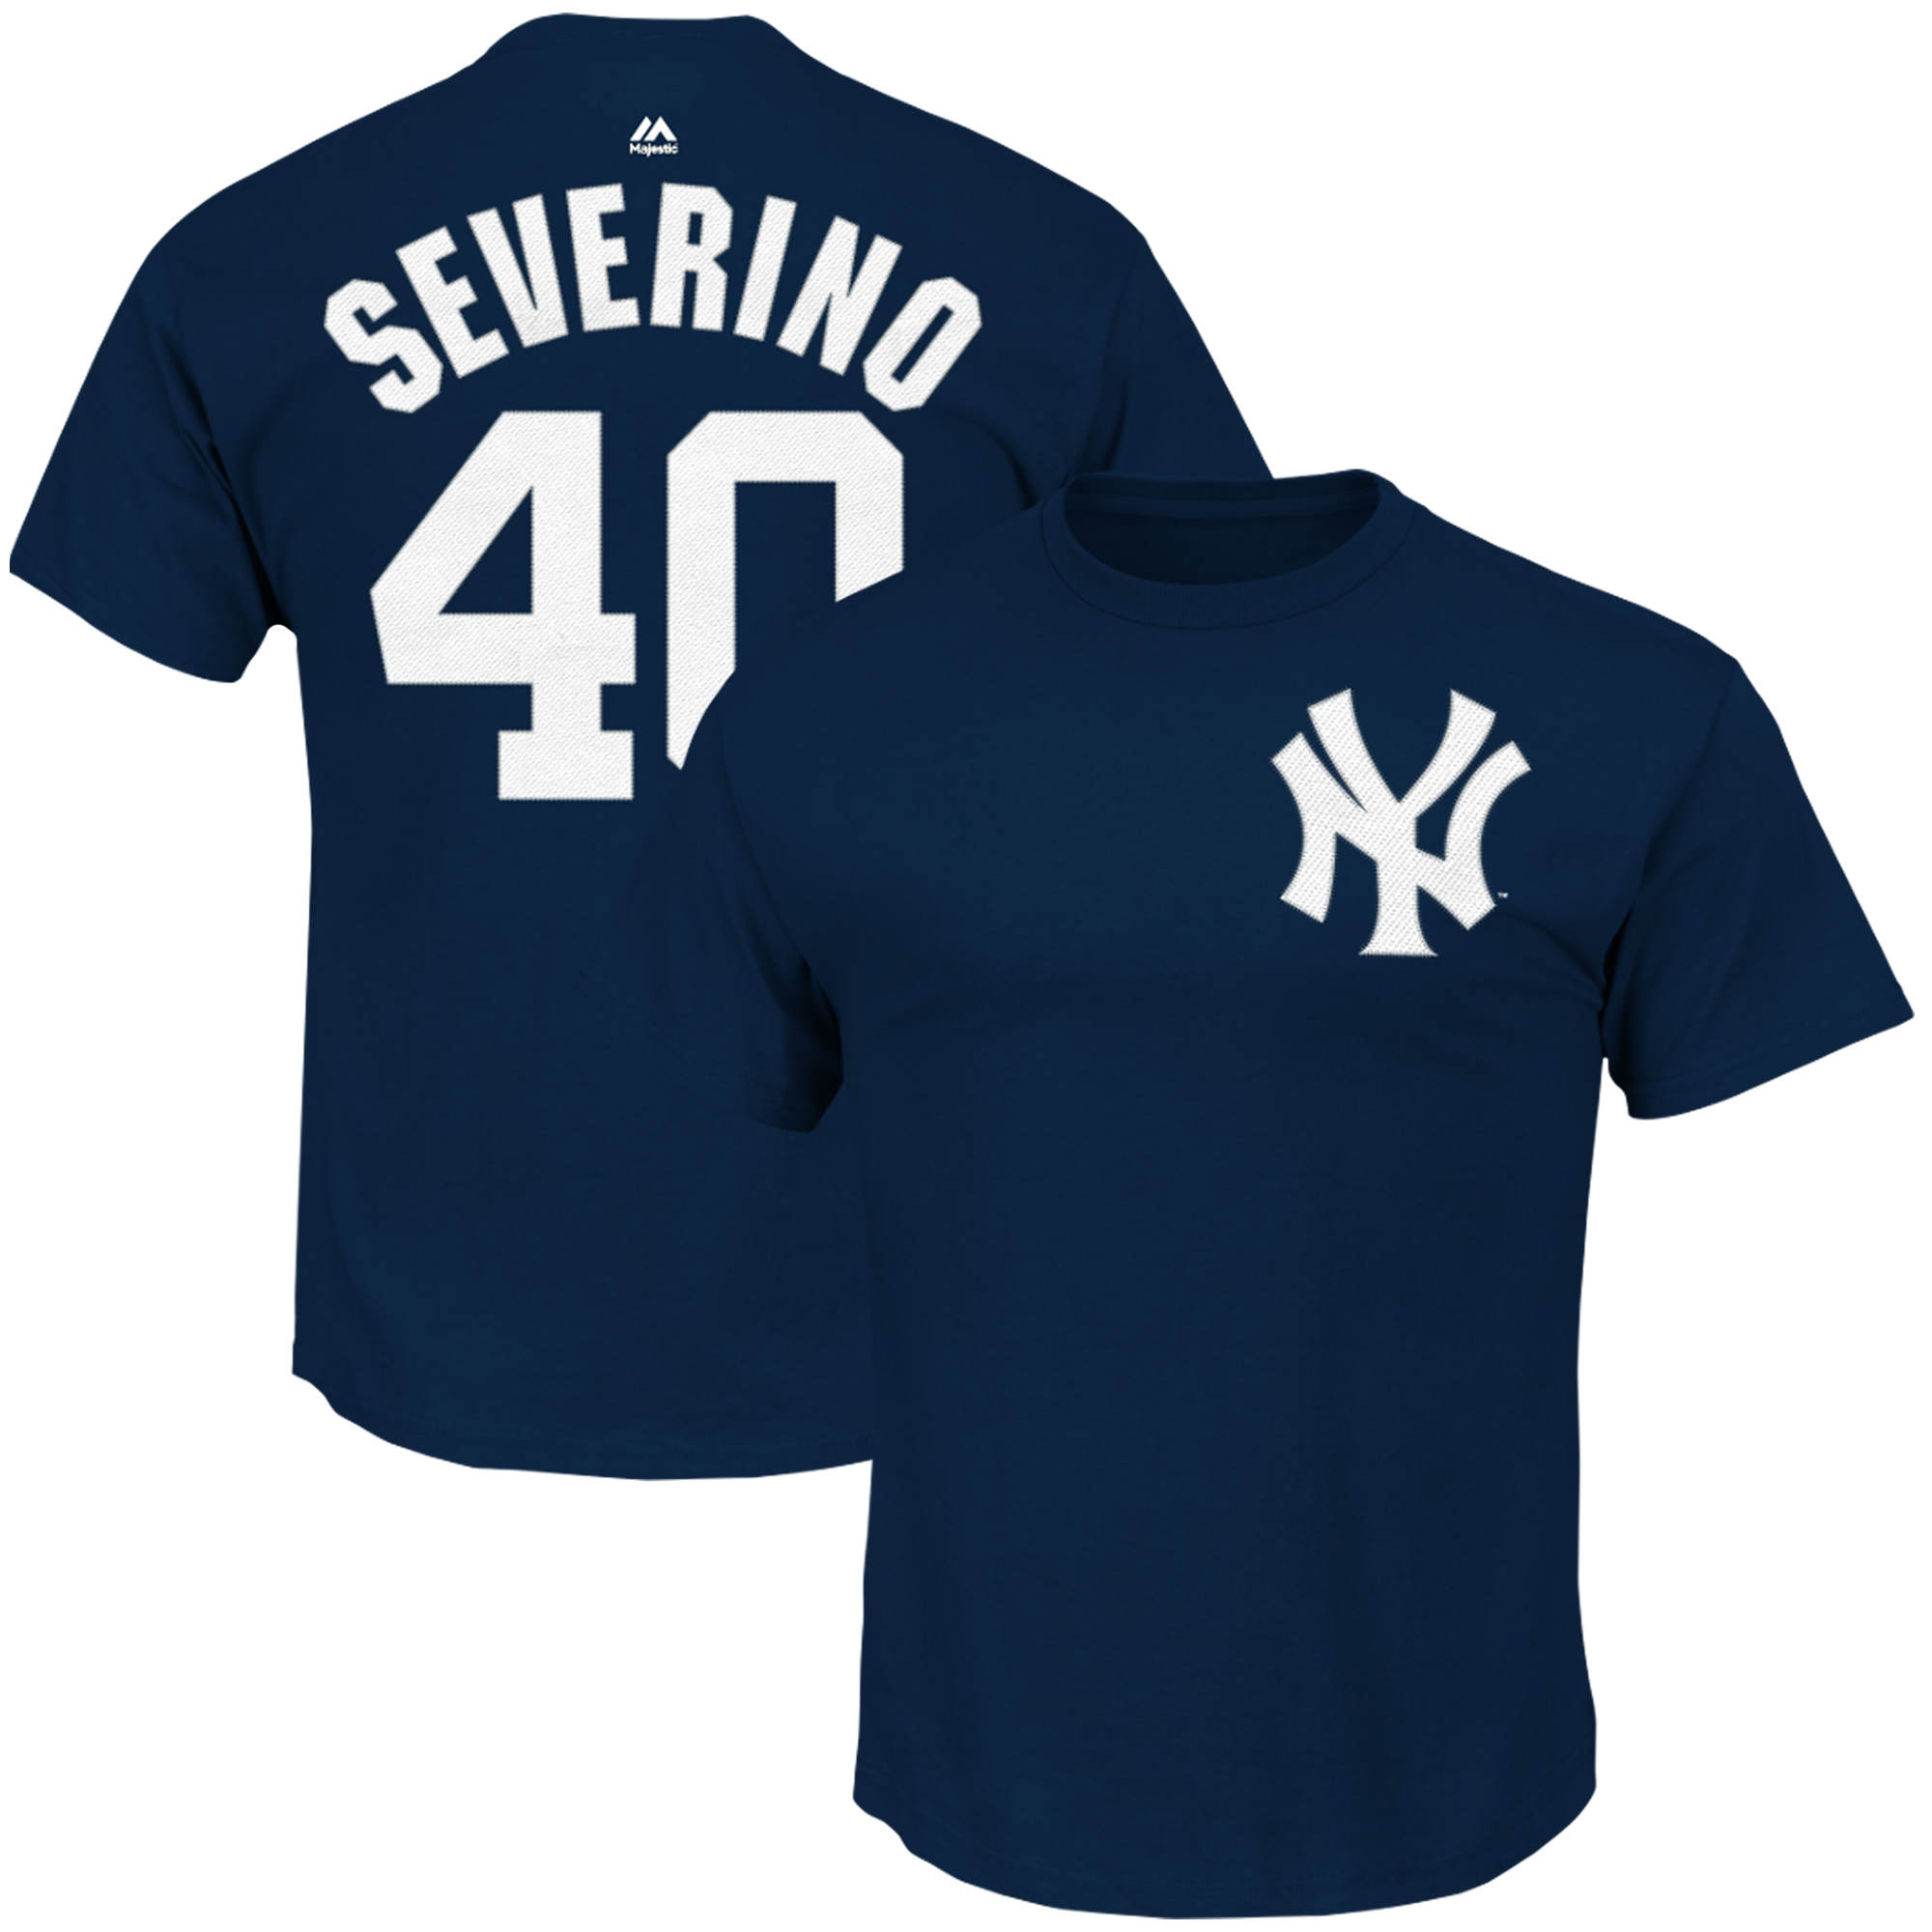 Luis Severino New York Yankees Majestic Official Name & Number T-Shirt - Navy